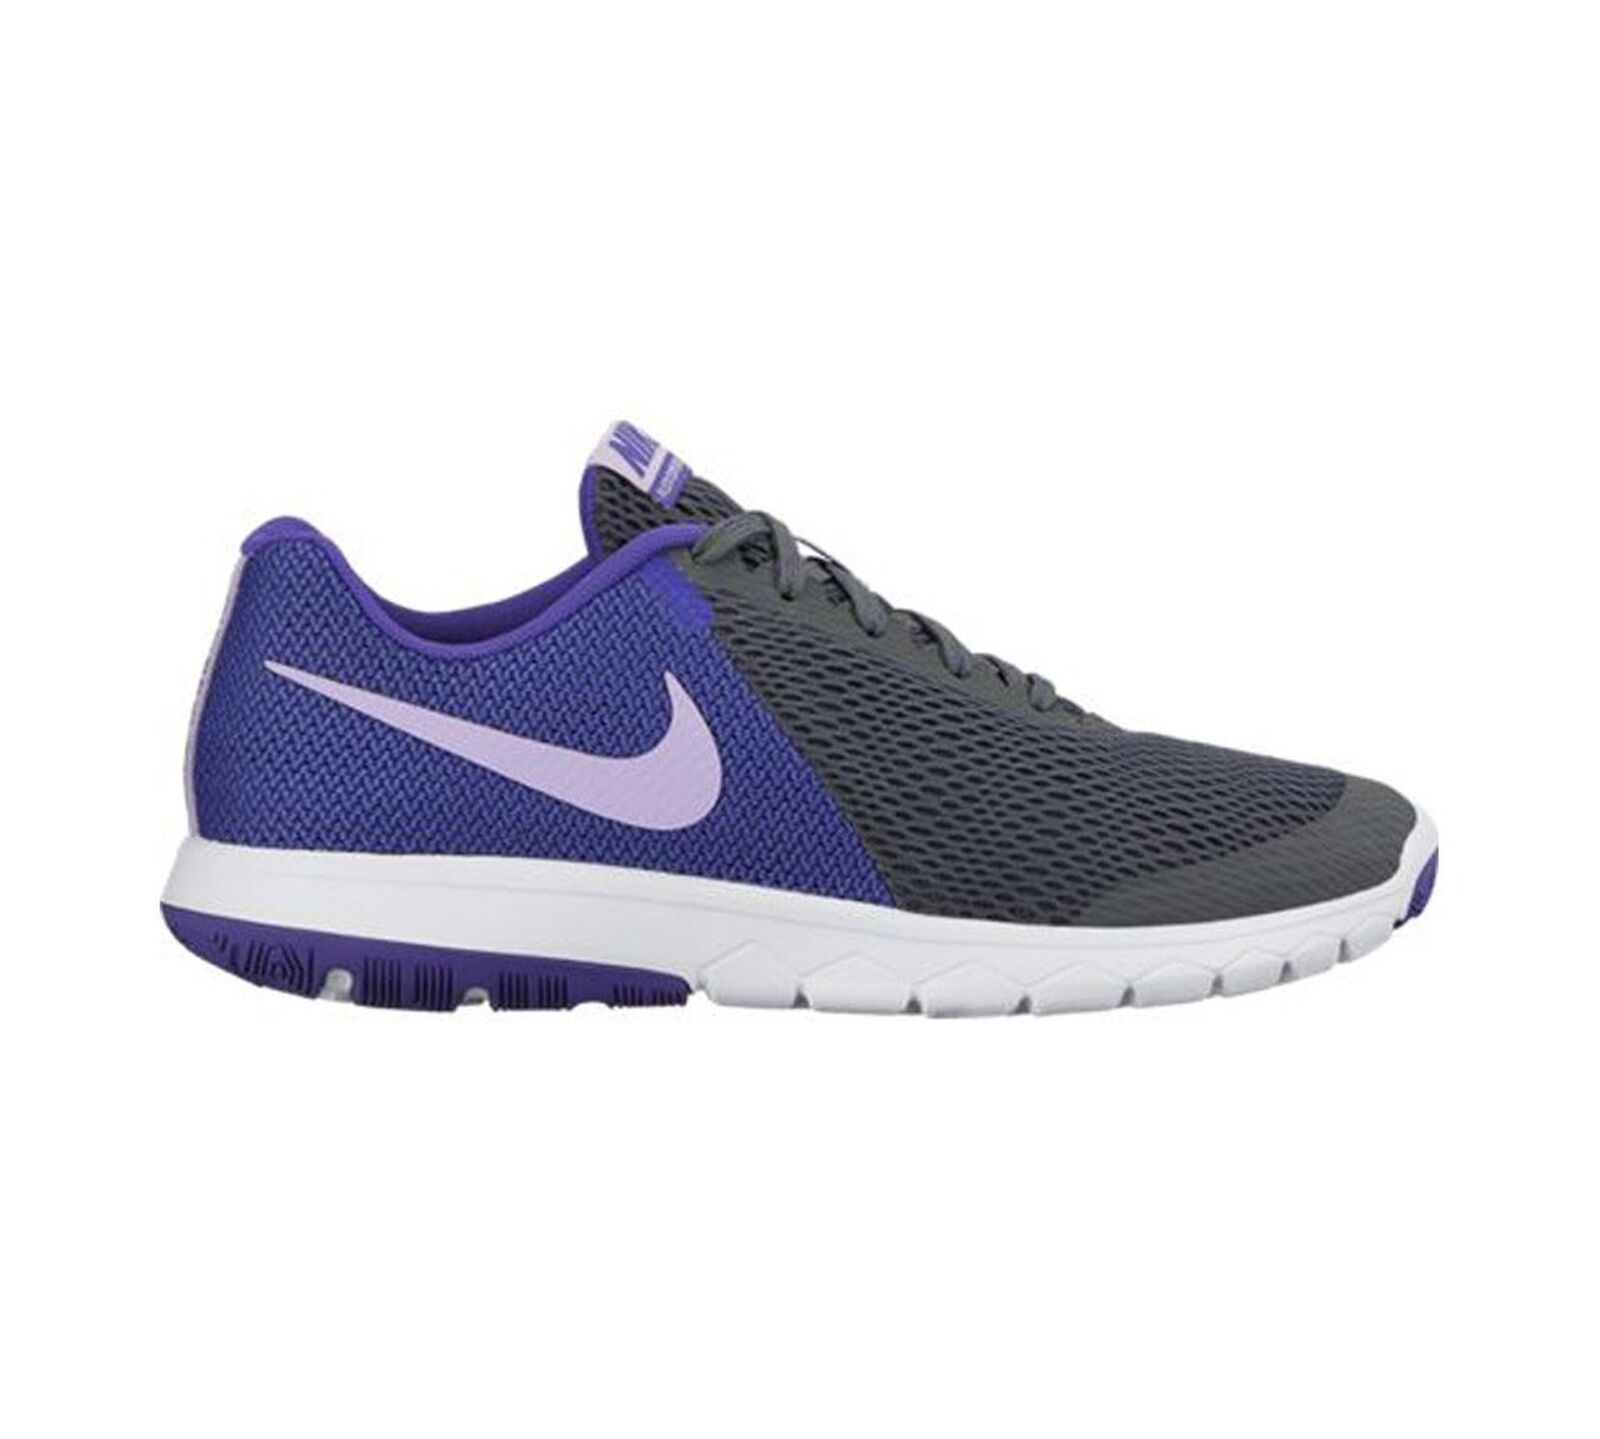 Nike Womens Flex Experience RN 5 Running Shoe Price reduction US, Dark Grey/Urban Lil... New shoes for men and women, limited time discount